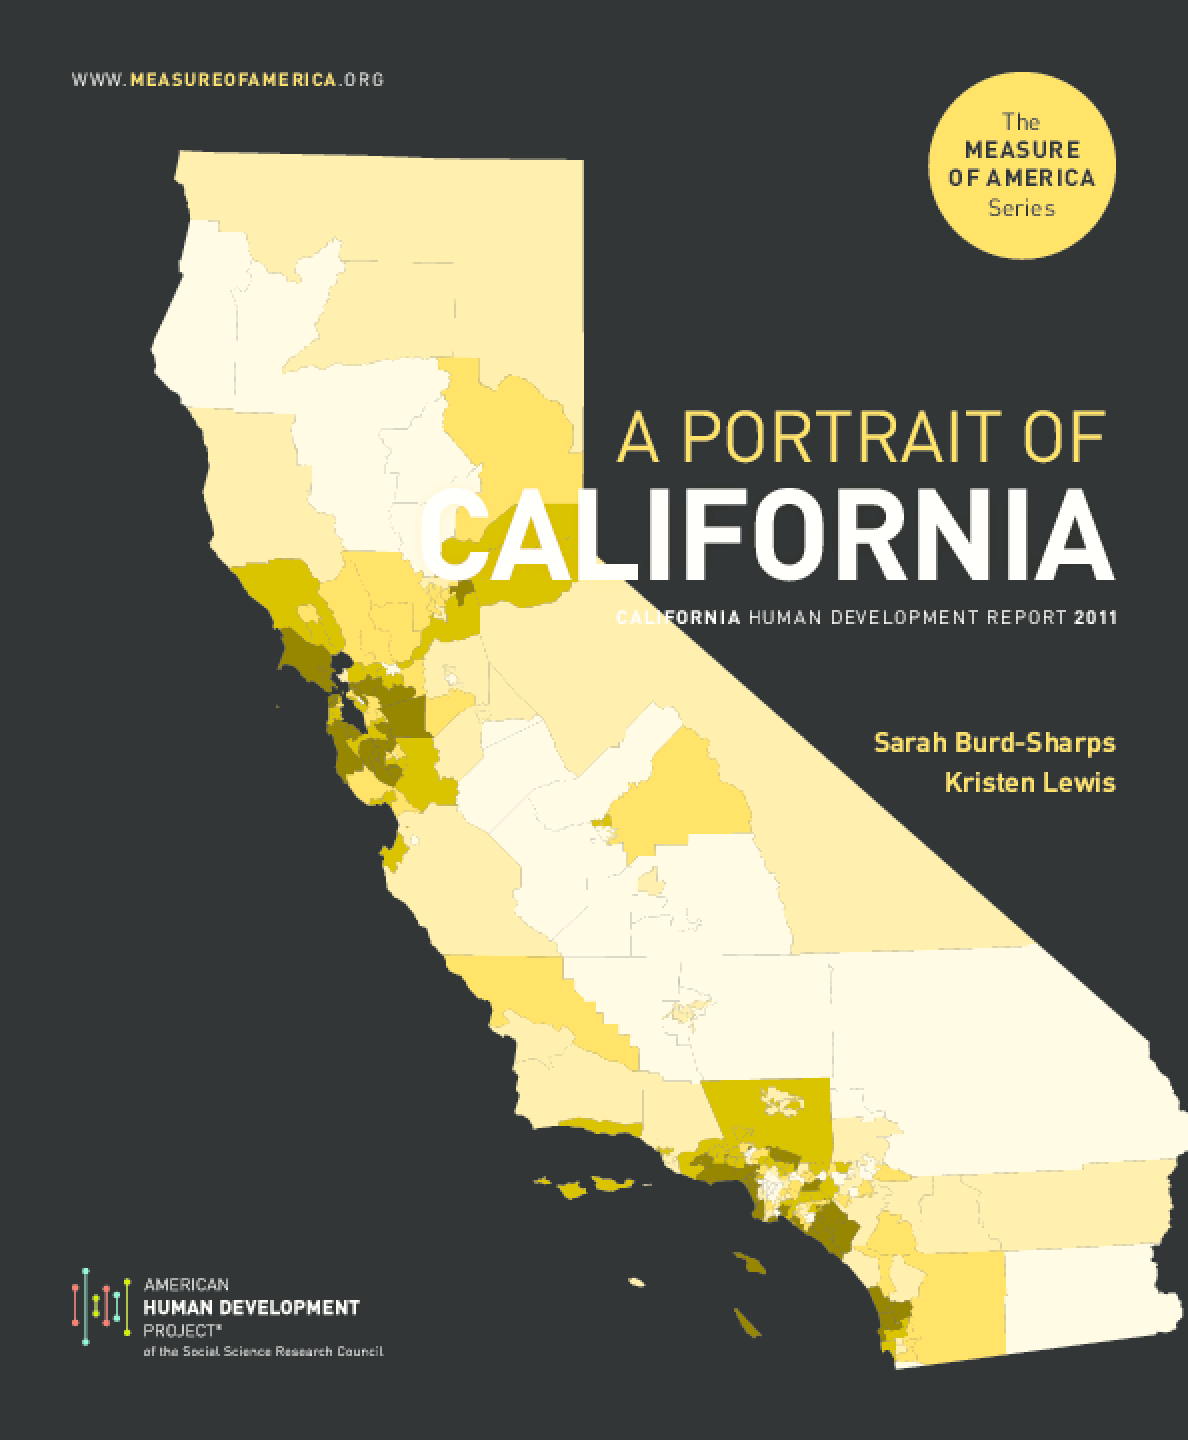 A Portrait of California: California Human Development Report 2011